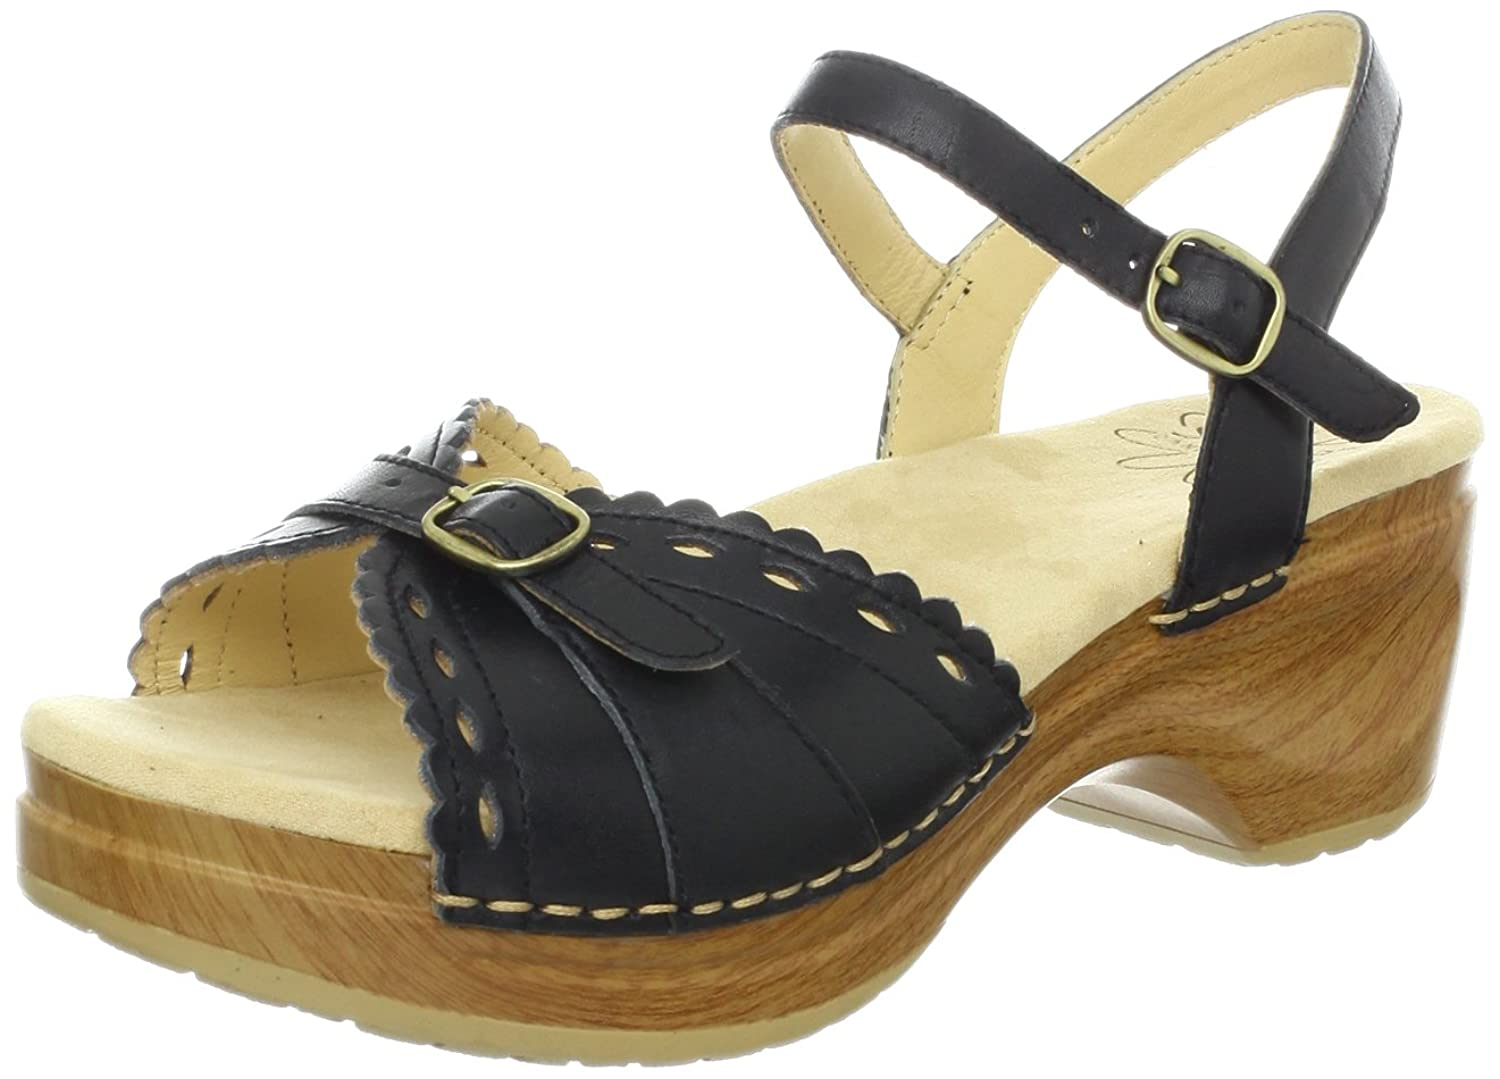 Women's Sanita Dawn Platform Sandal for Plantar Fasciitis